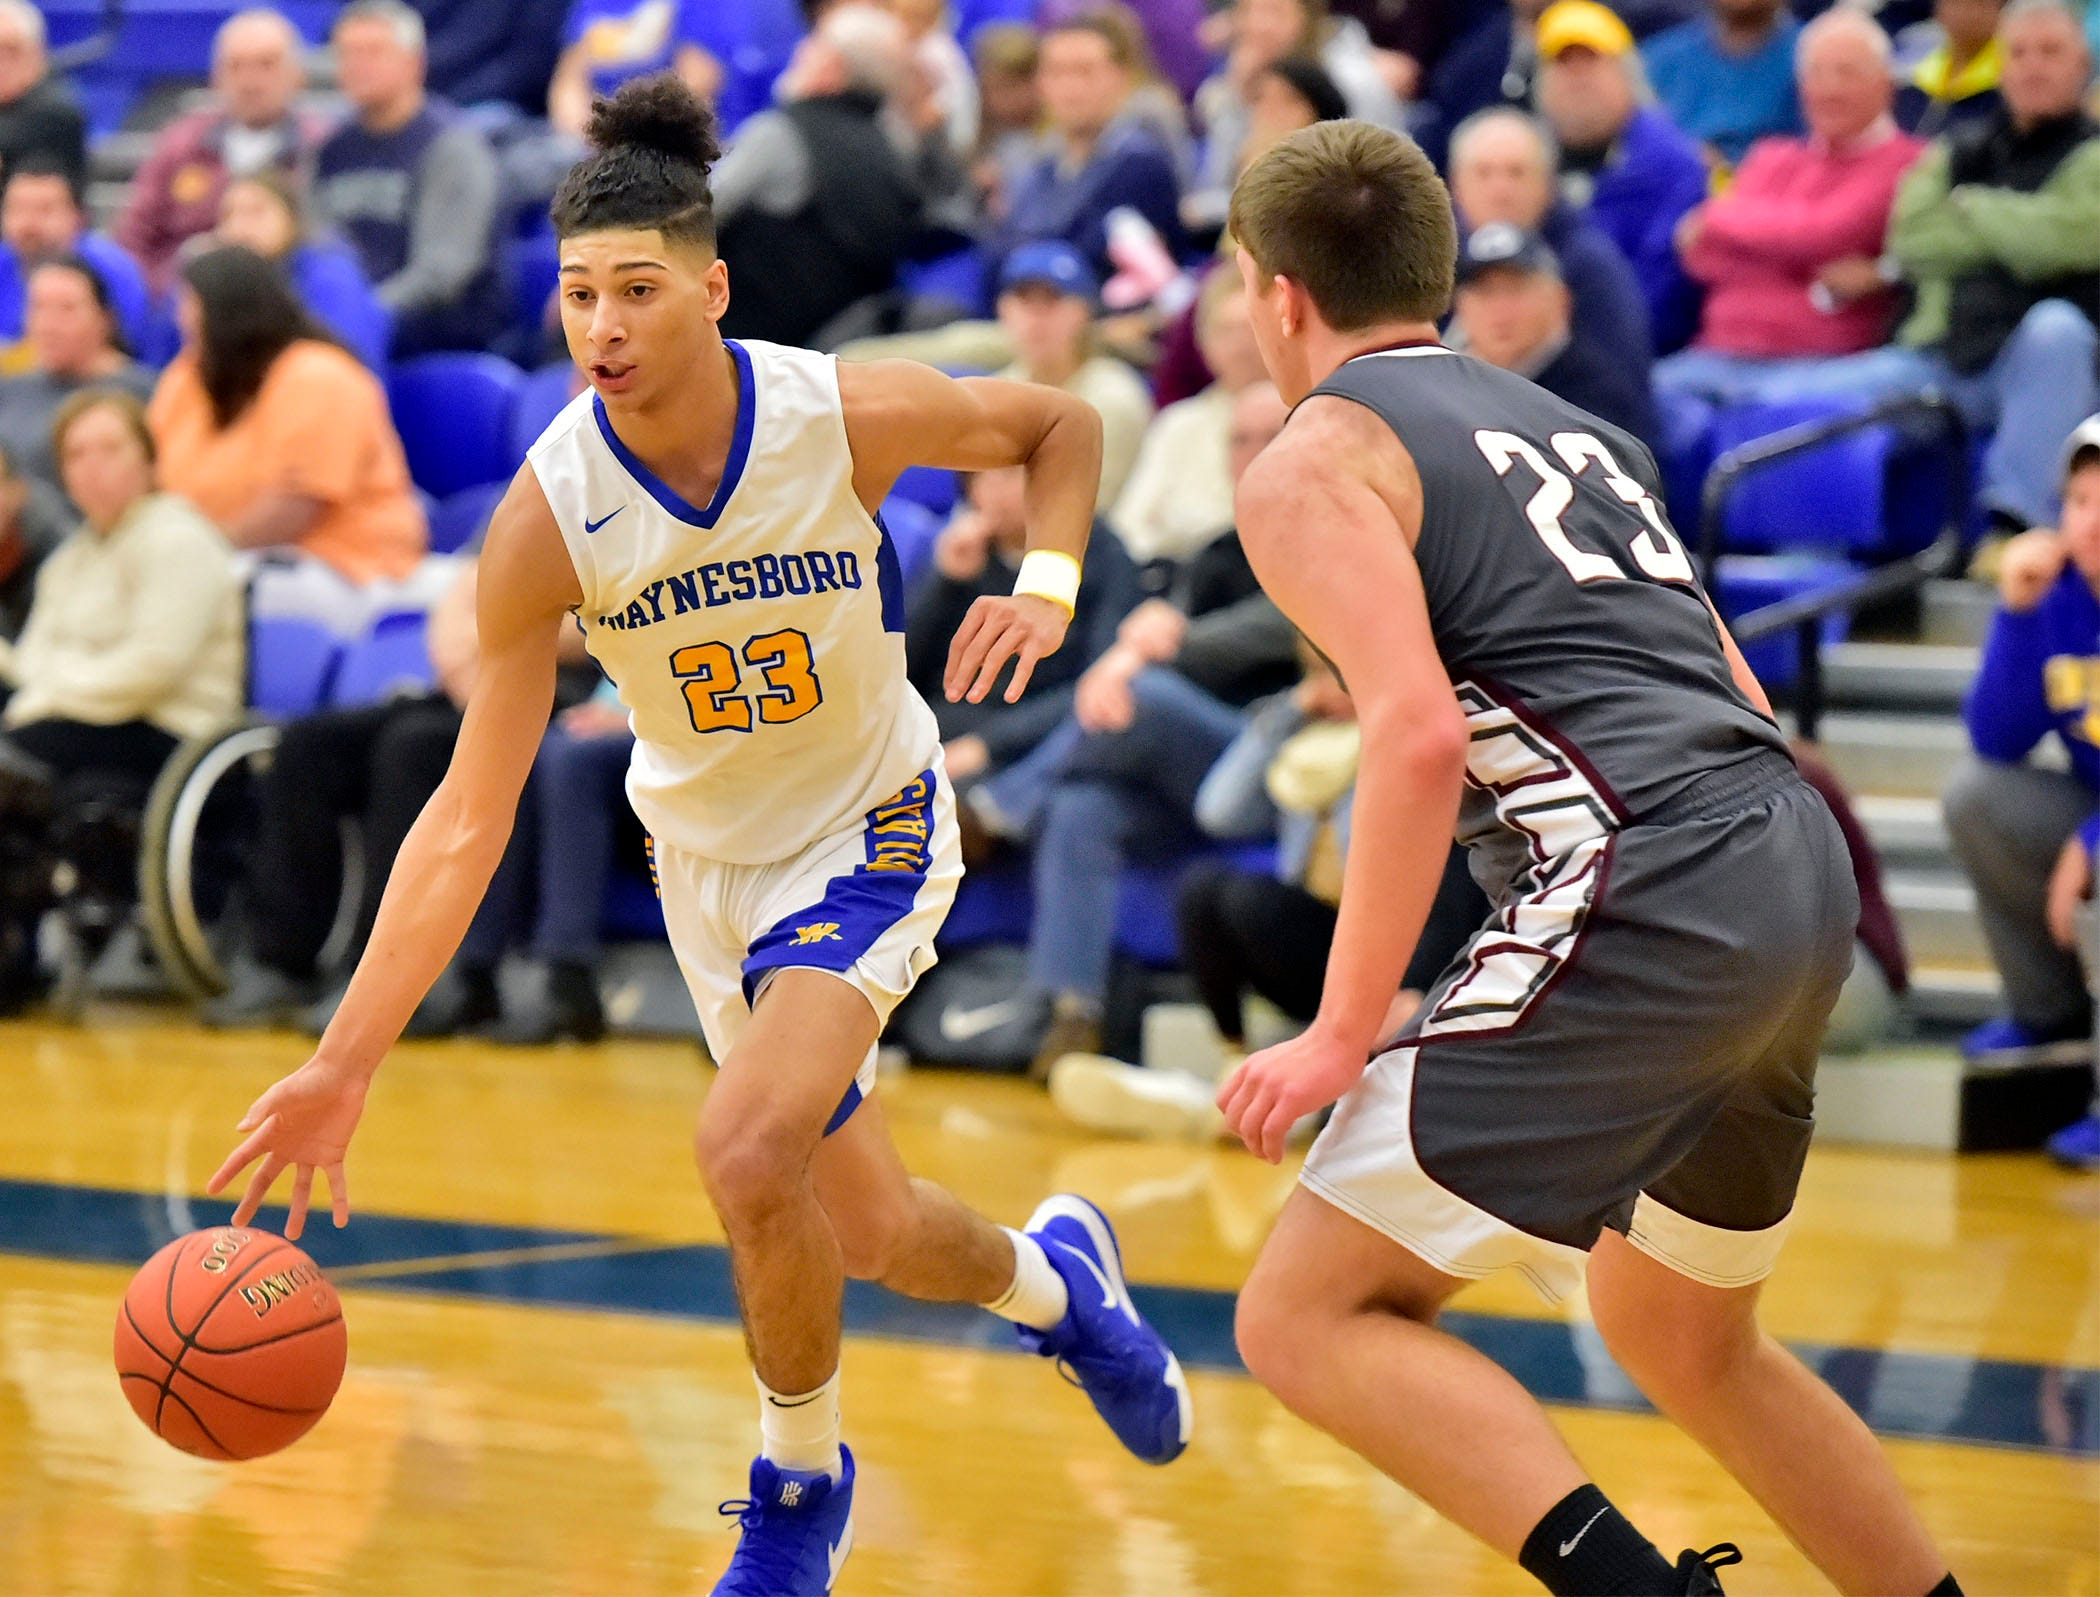 Waynesboro's Jay Alvarez (23) dribbles past Shippensburg's Collin Taylor on Tuesday, December 18, 2018. Waynesboro defeated Shippensburg 72-59 during a home.